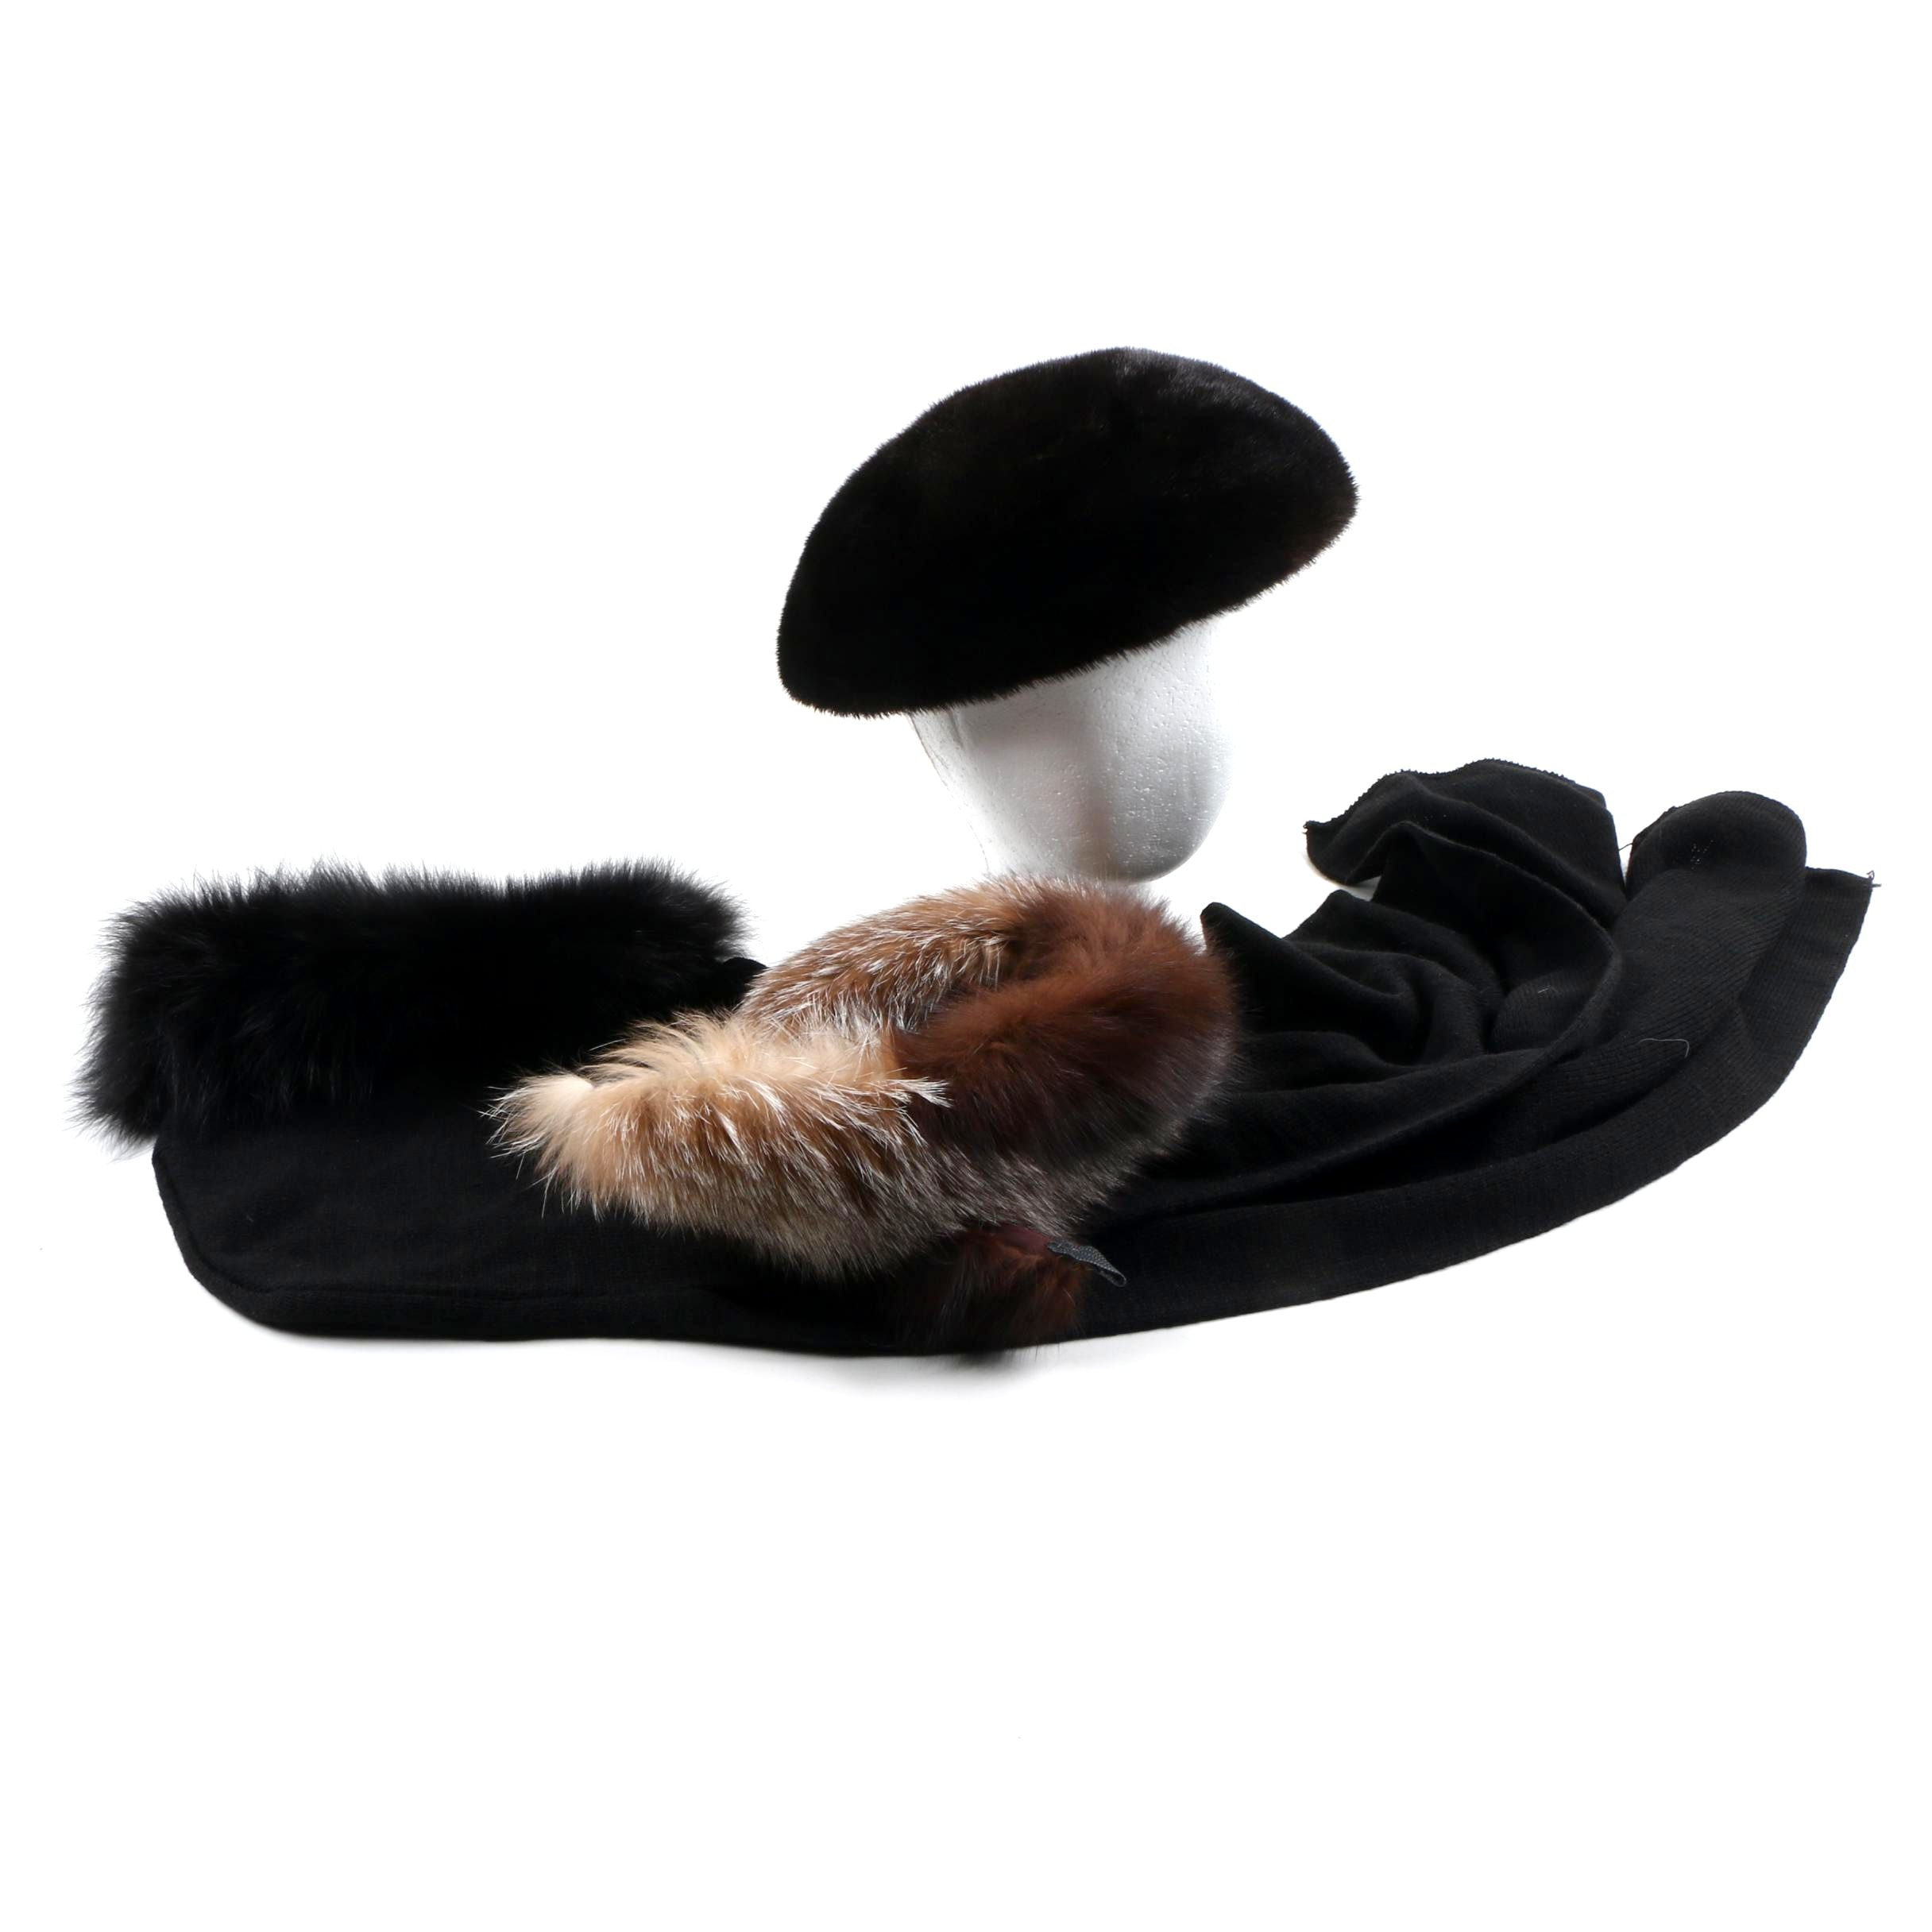 Wome's Fur Accessories Including Fox Fur and Mink Fur